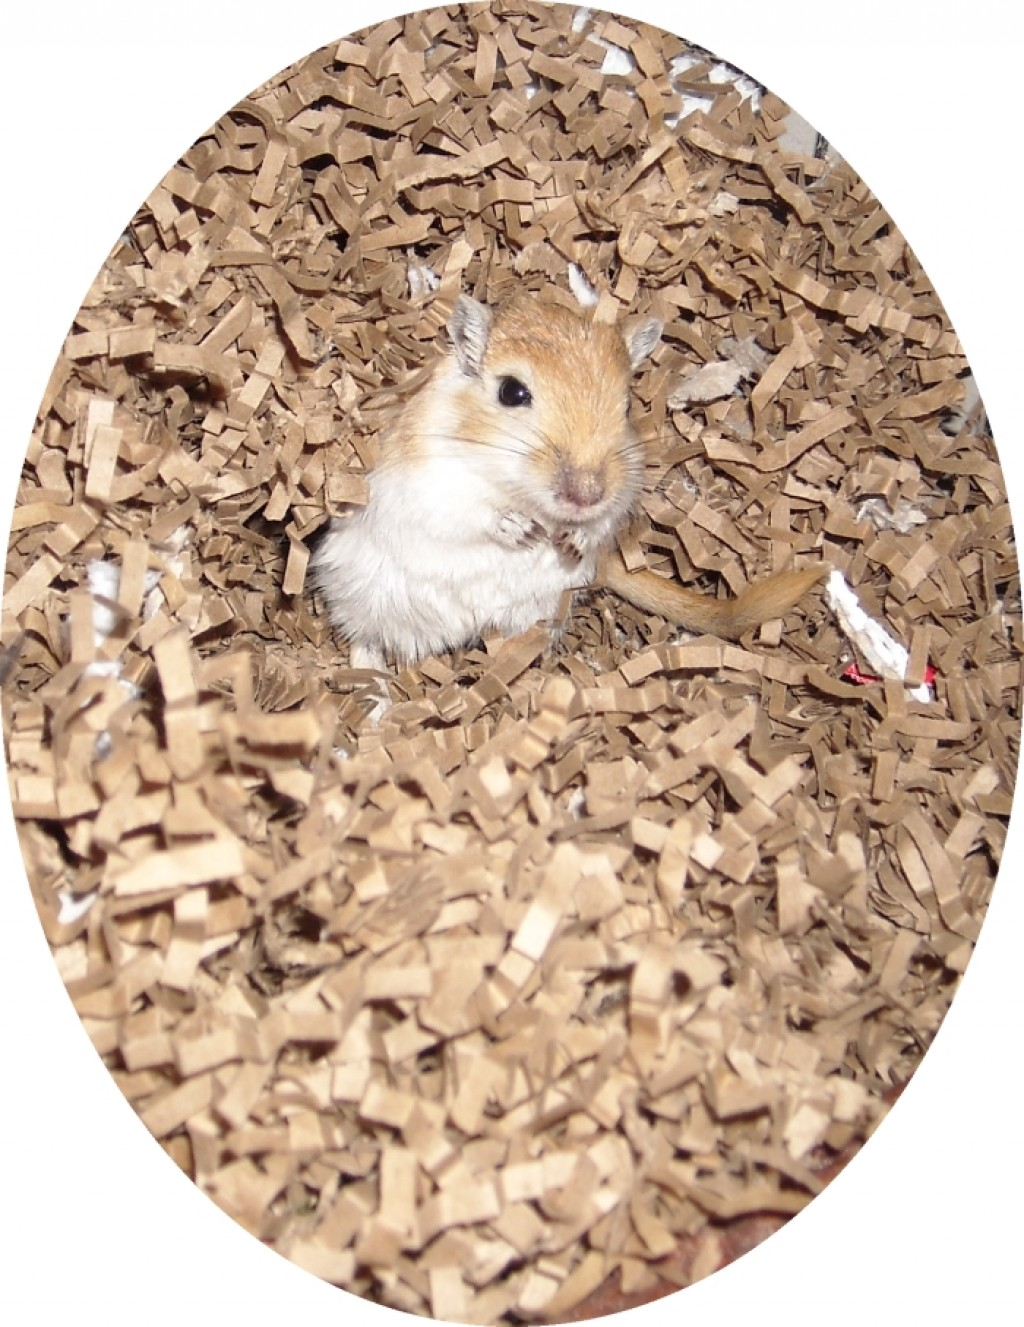 All About Gerbils: Care For Your Gerbil's Diet | PetHelpful